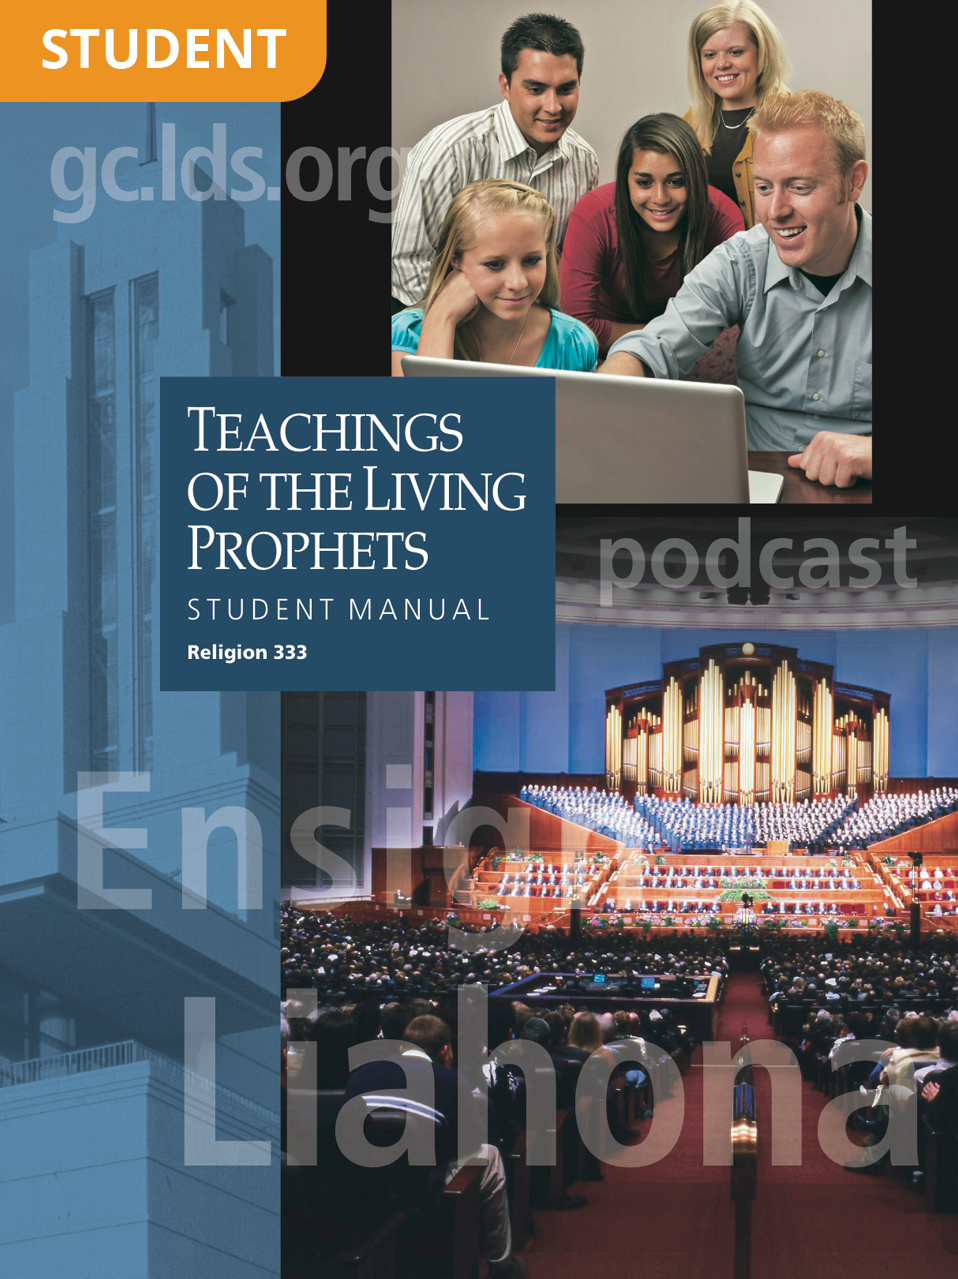 Teachings of the Living Prophets Student Manual (Rel 333)